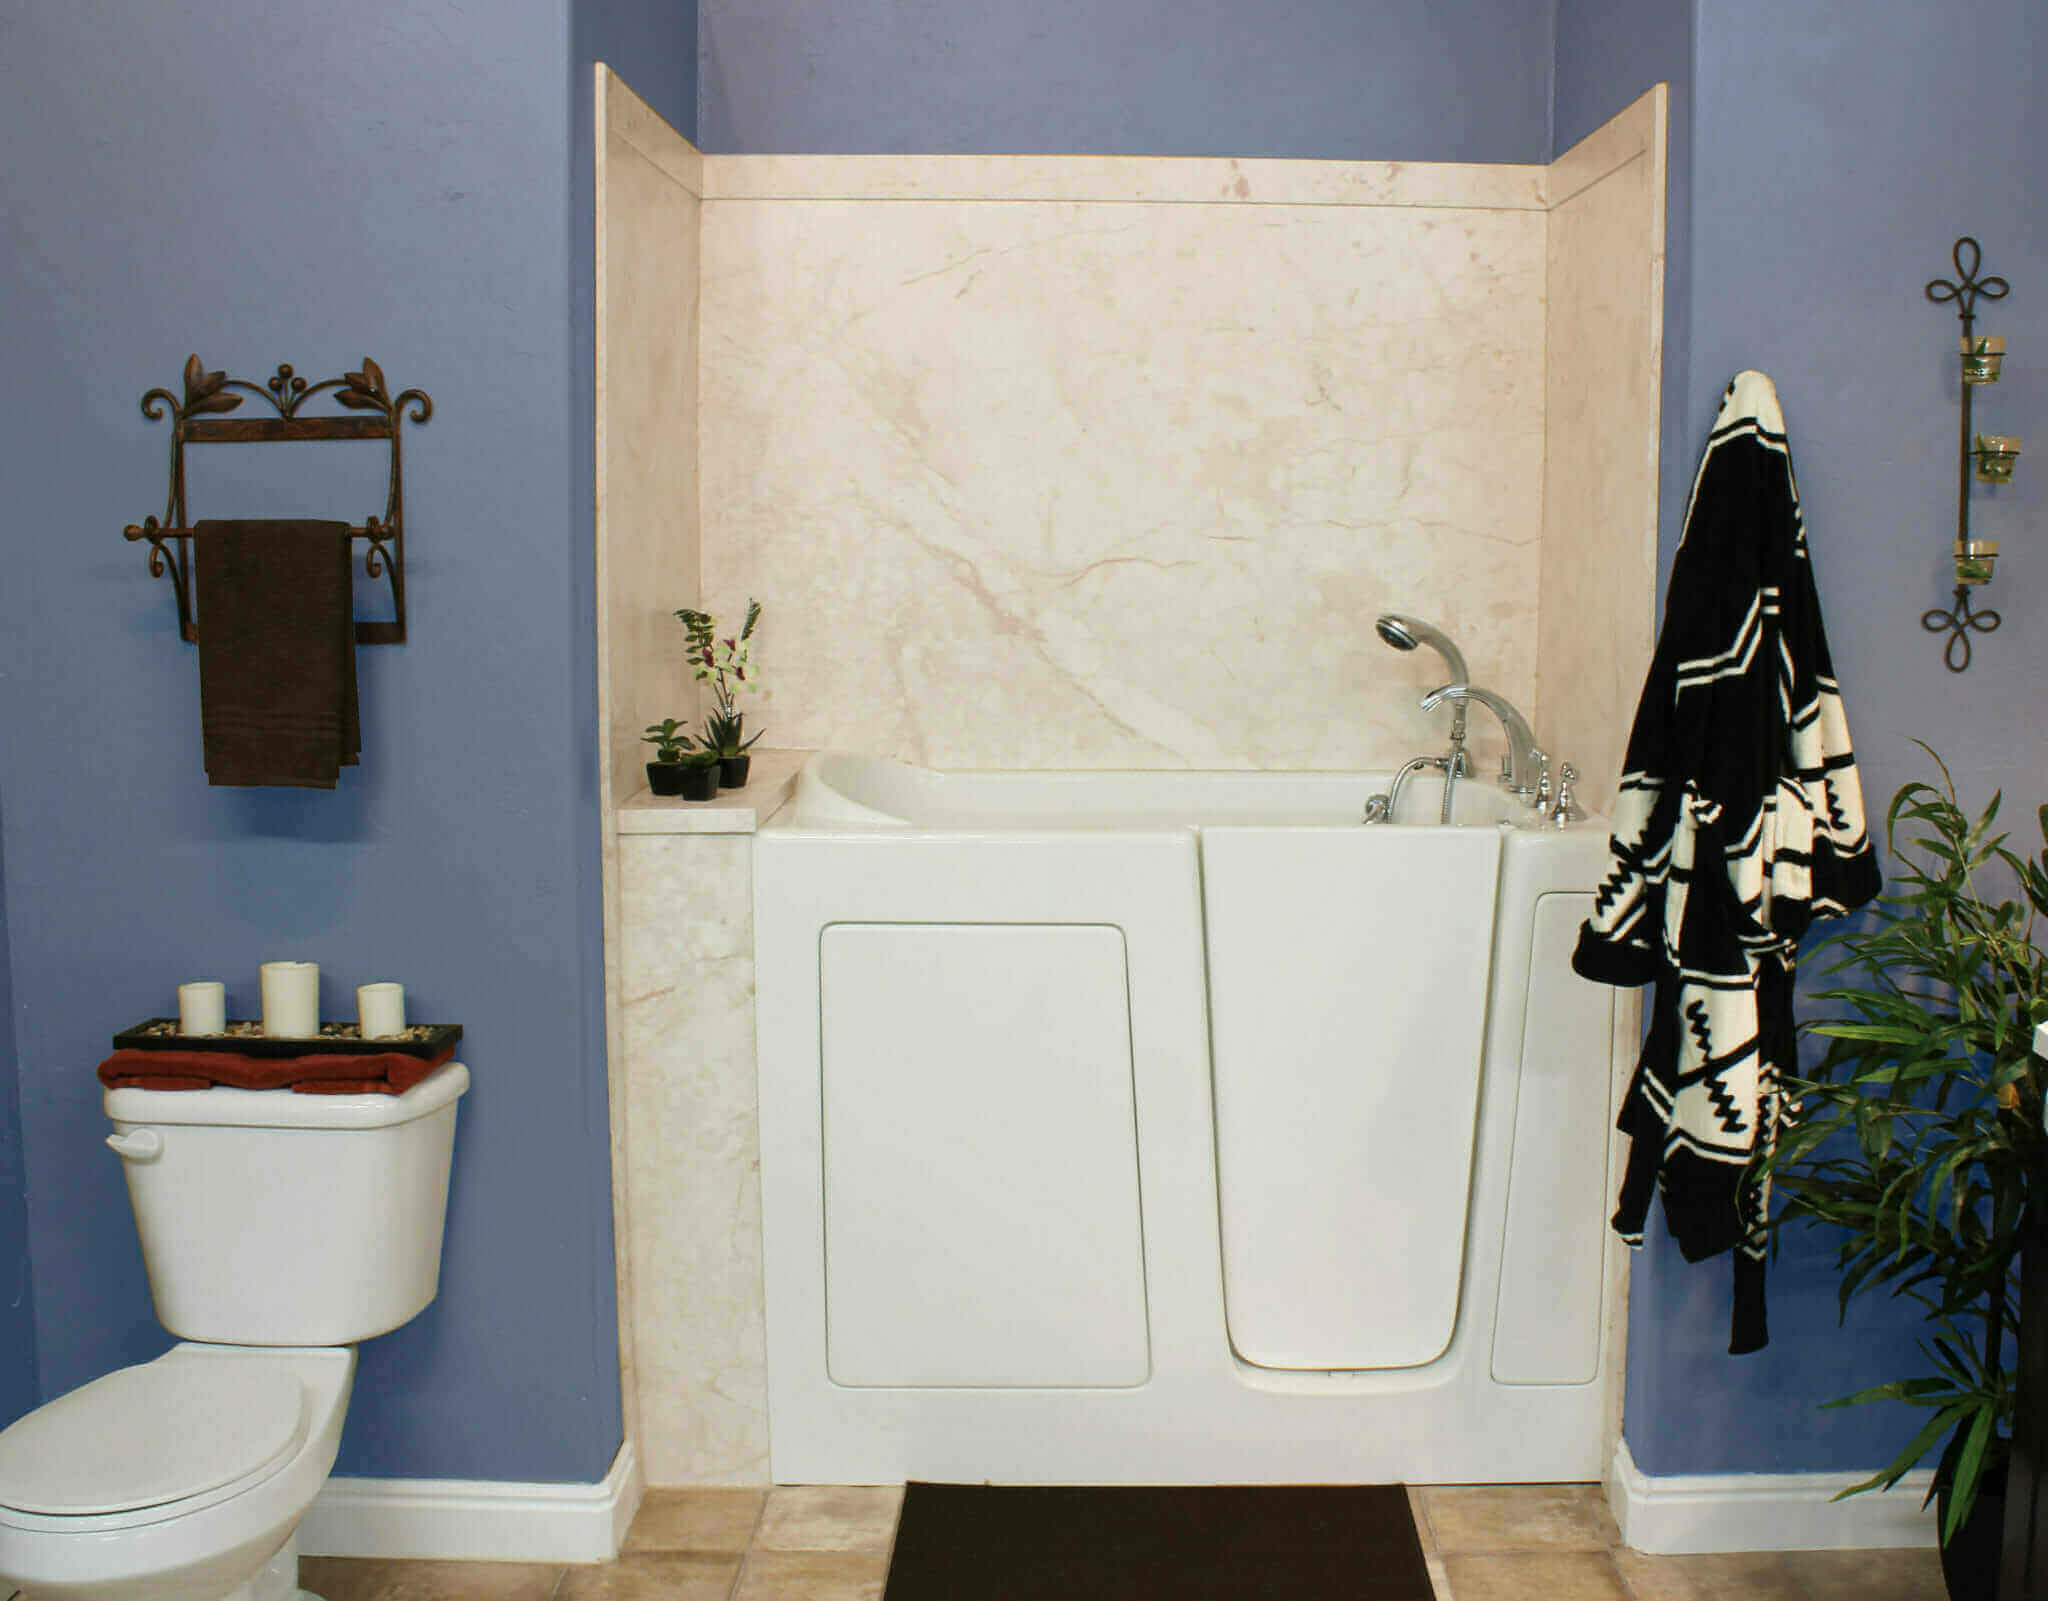 Mesa Walk-In Tubs Installers | Five Star Bath Solutions of Mesa ...